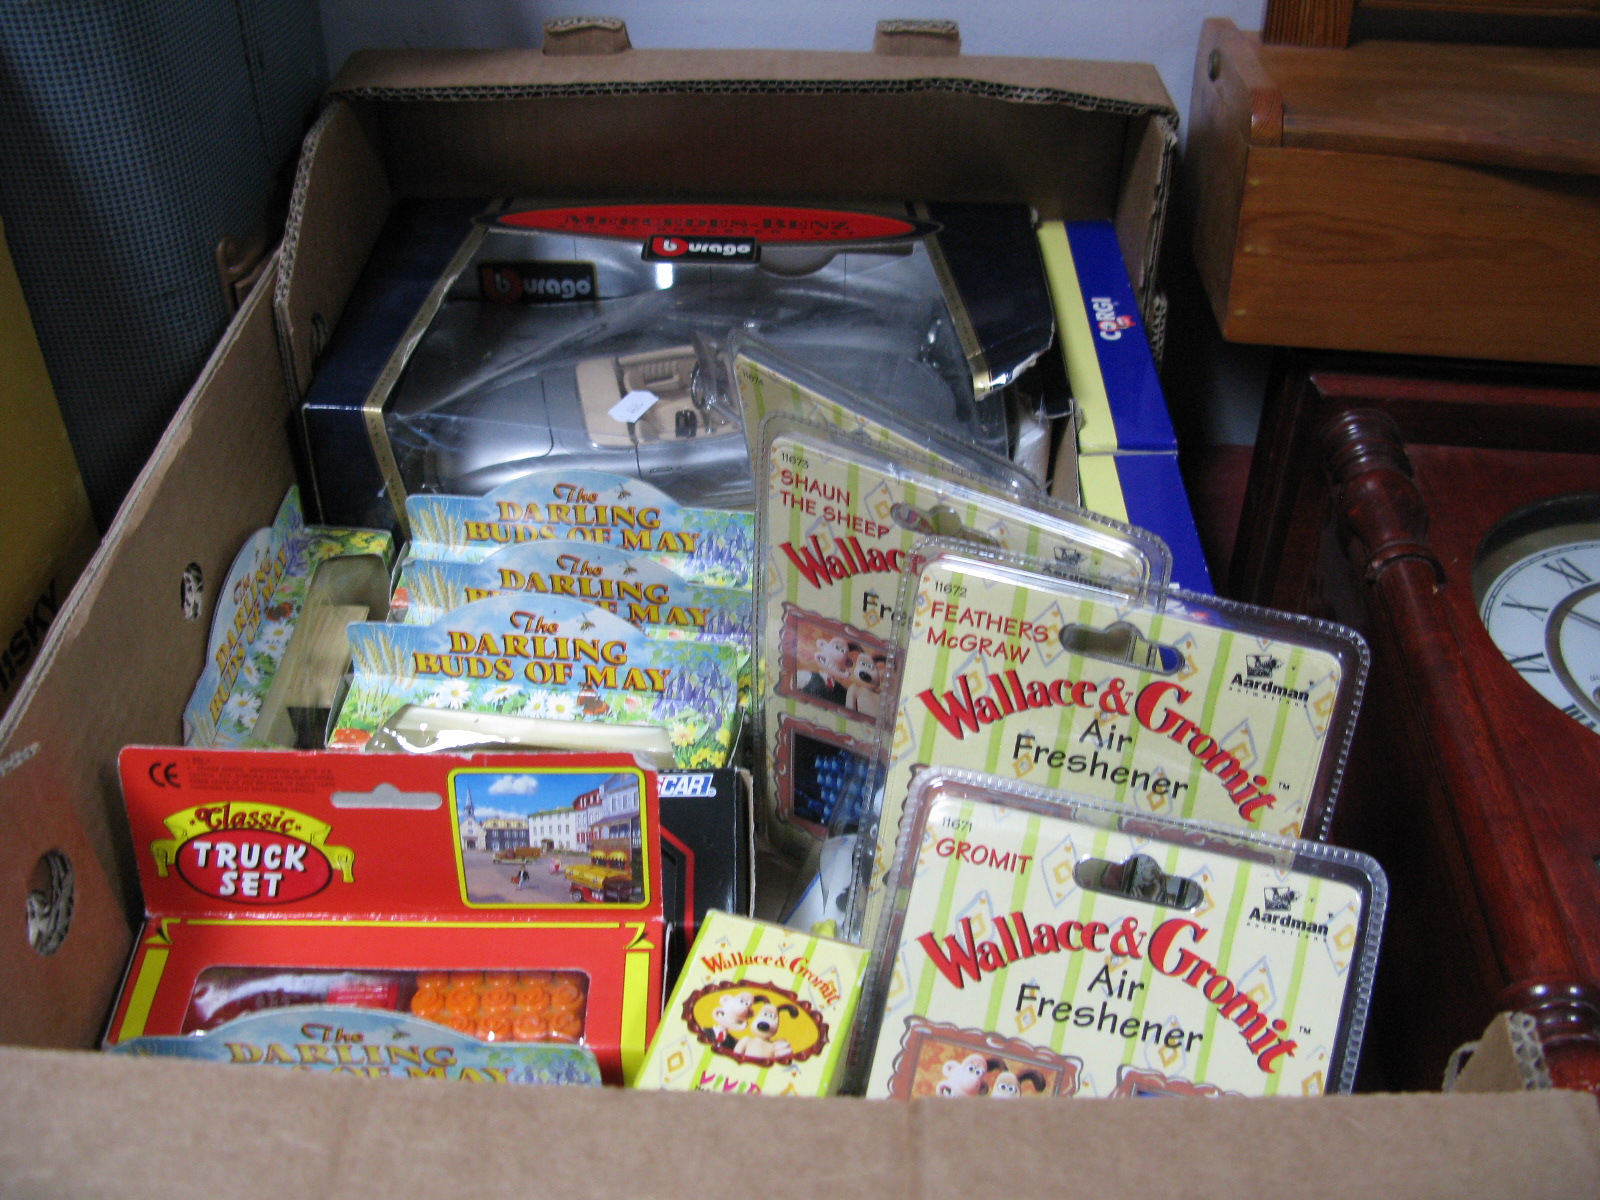 Lot 1040 - Burago Mercedes-Benz, Darling Buds of May, Wallace & Gromit, Other Diecast Vehicles:- One Box